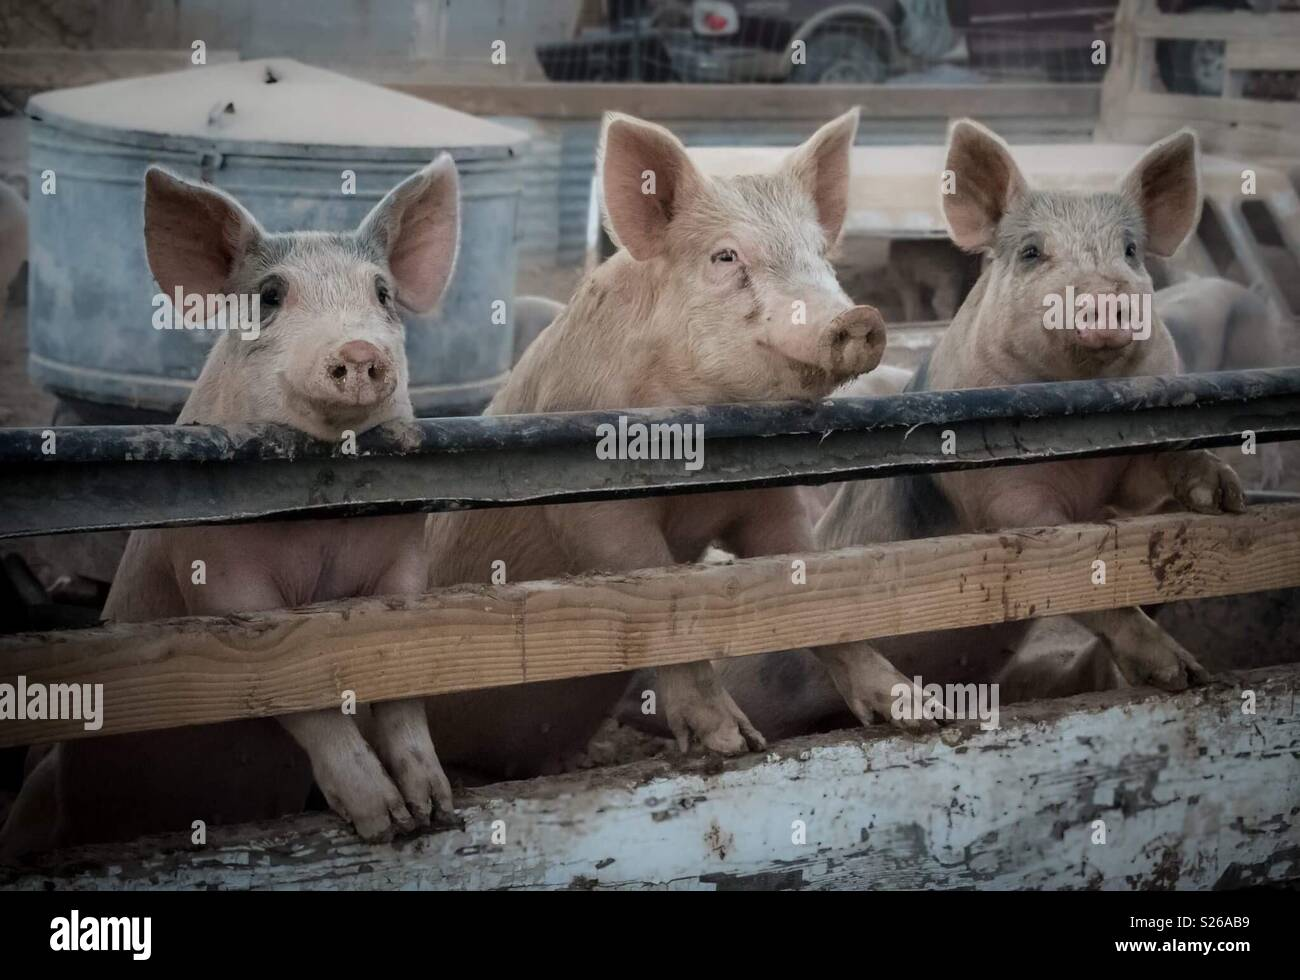 Three pigs - Stock Image